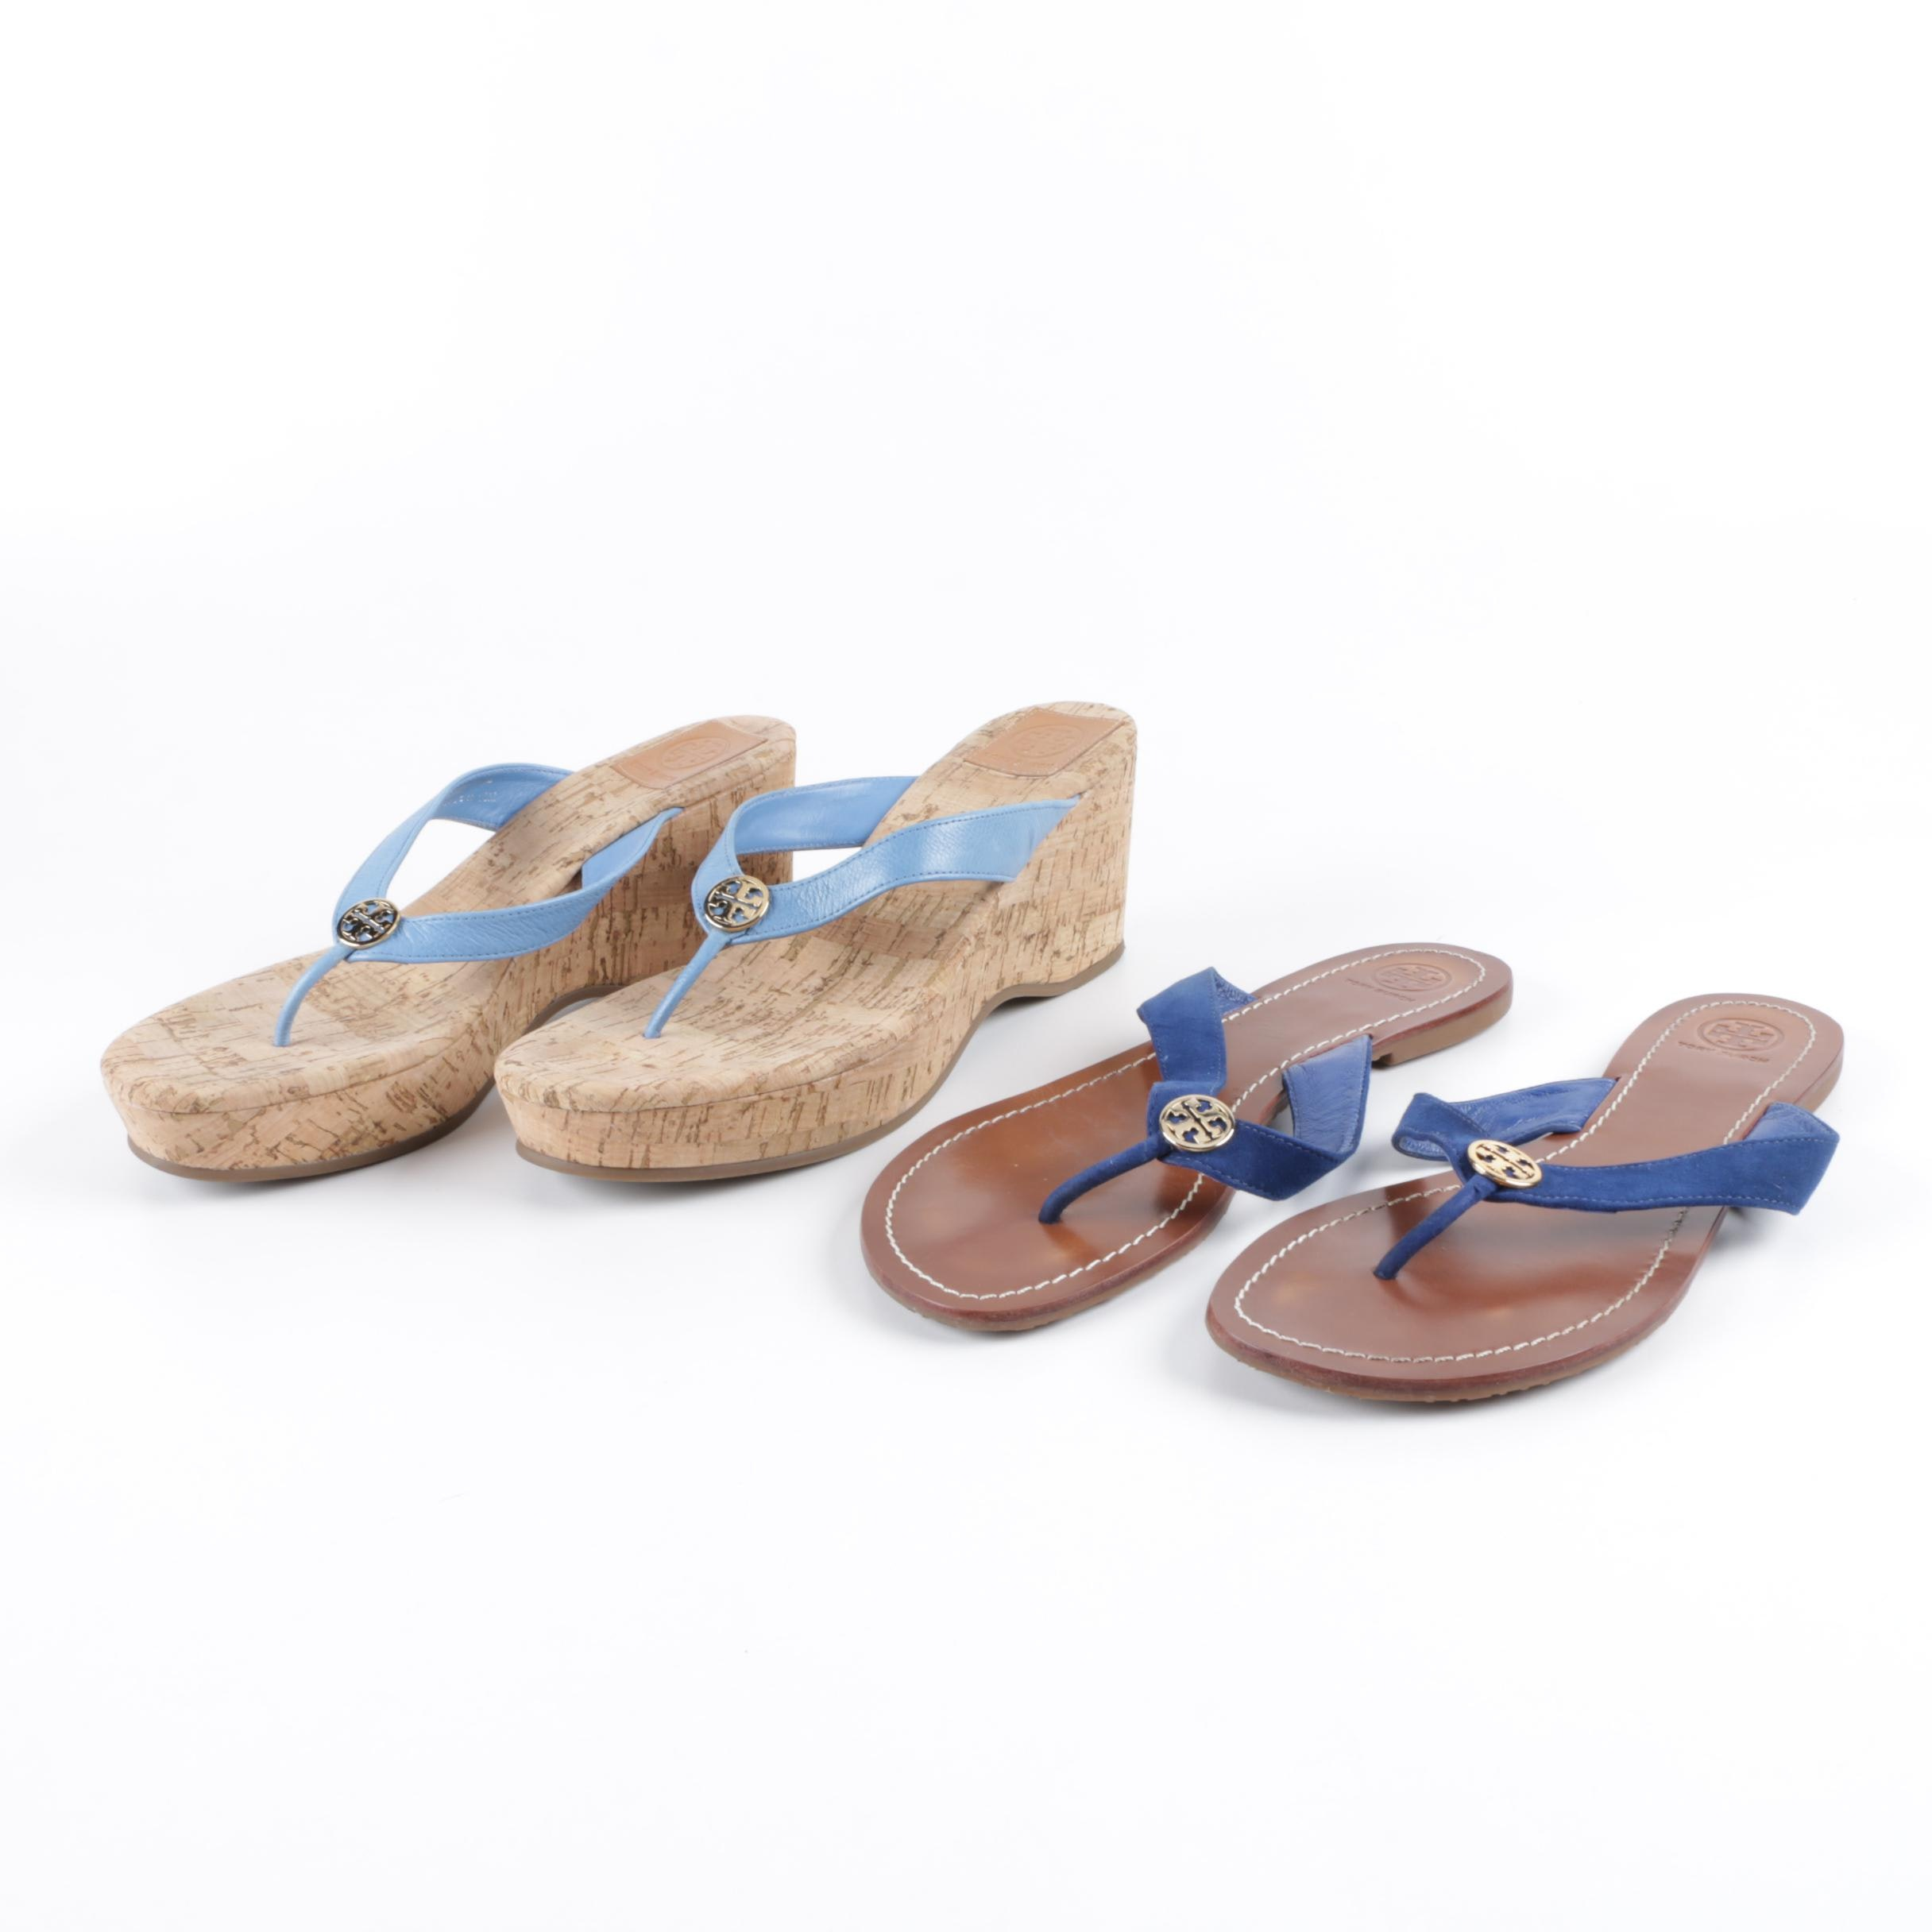 Tory Burch Leather and Suede Thong Sandals